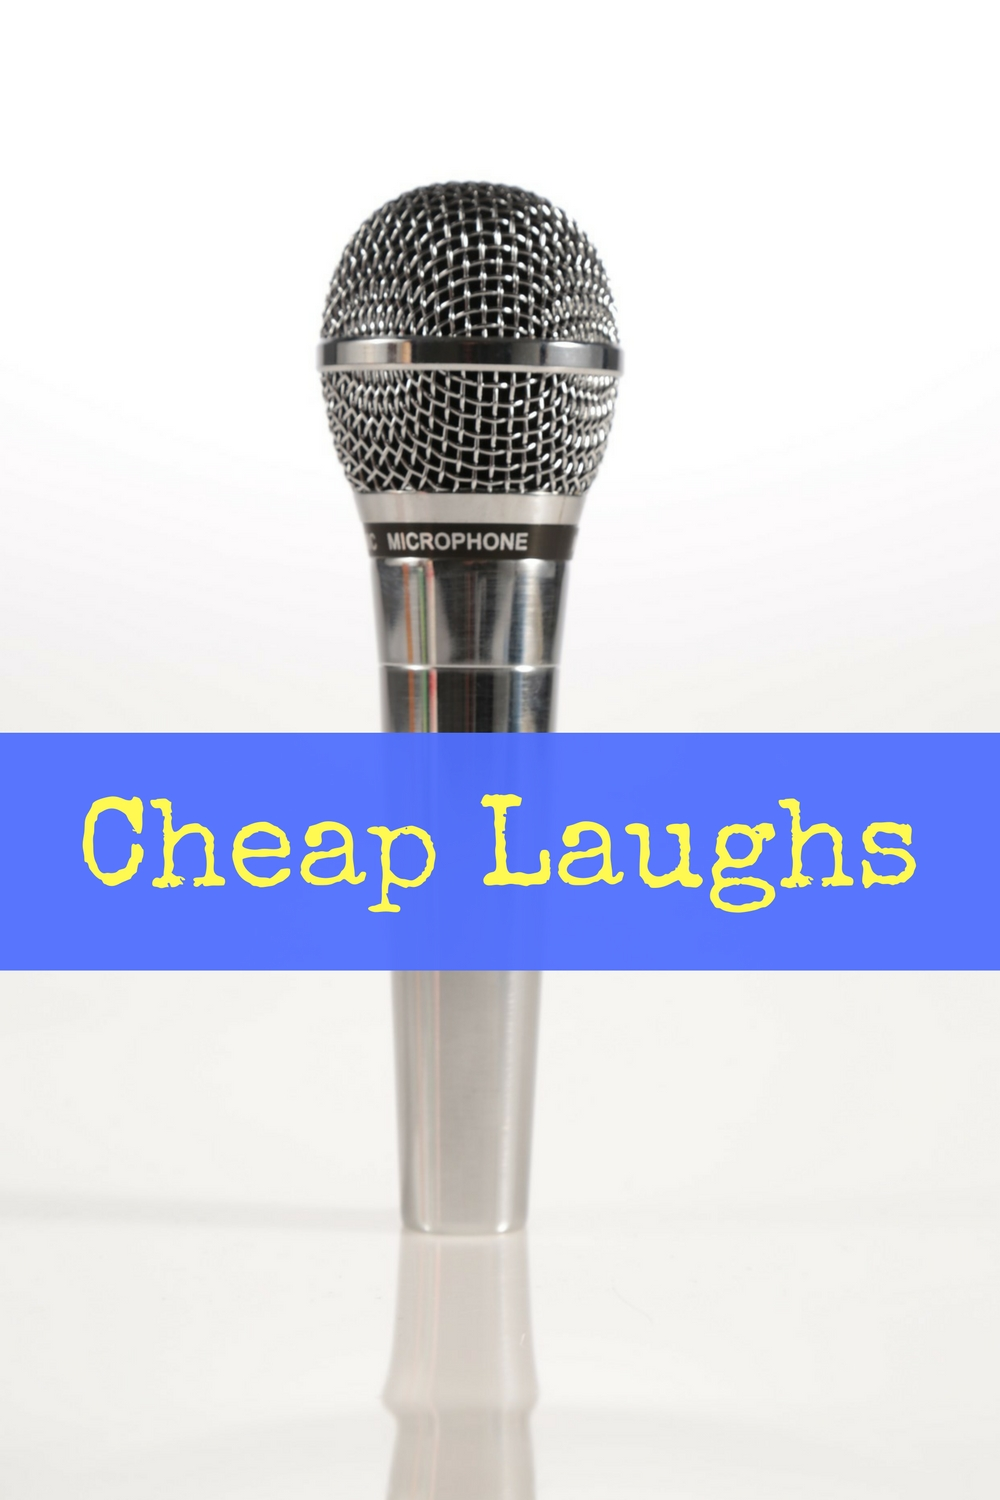 Great ideas to see comedians frugally!